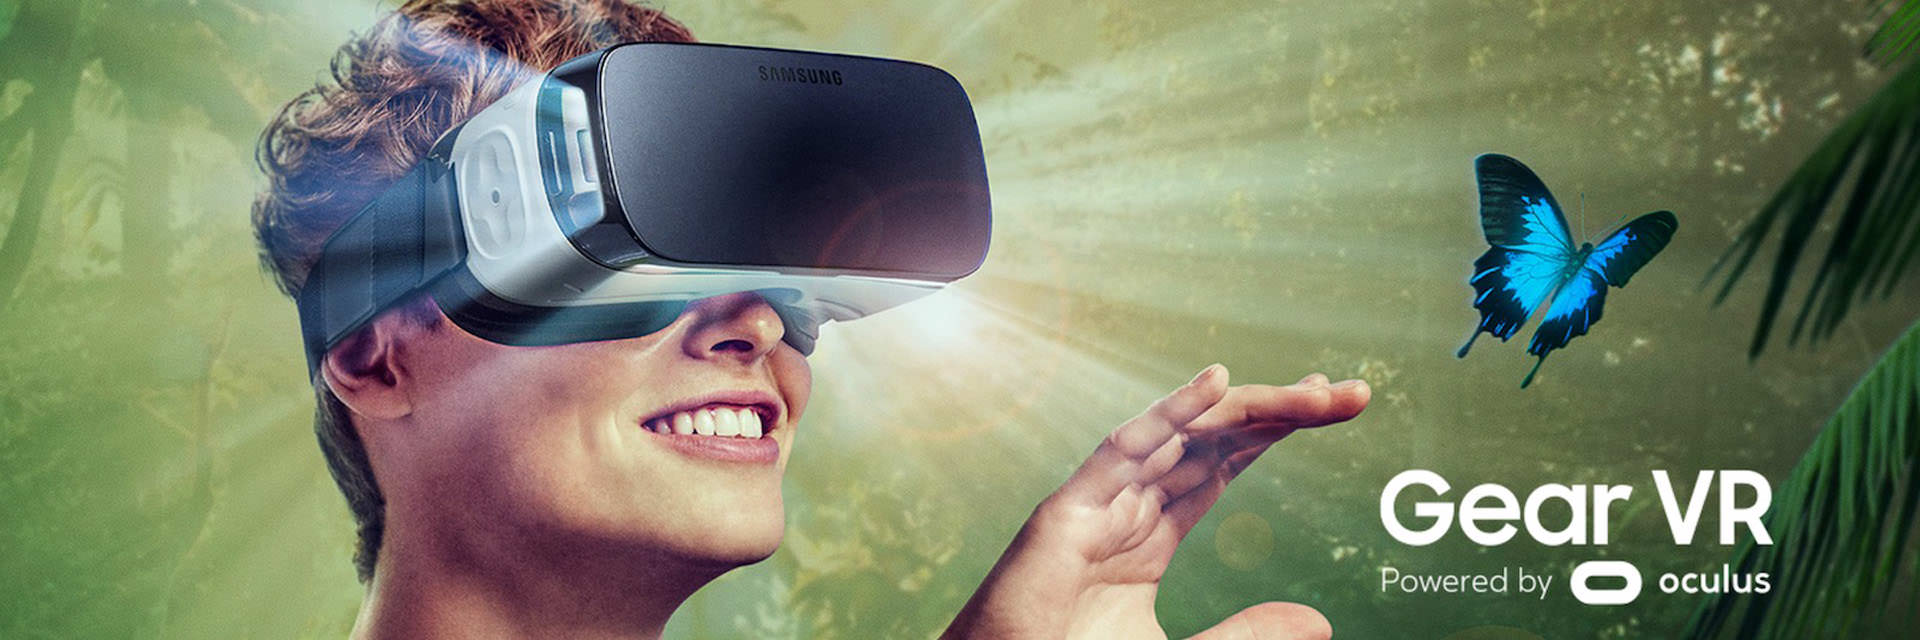 The Top 10 Tips for Adapting Your Mobile Game to VR